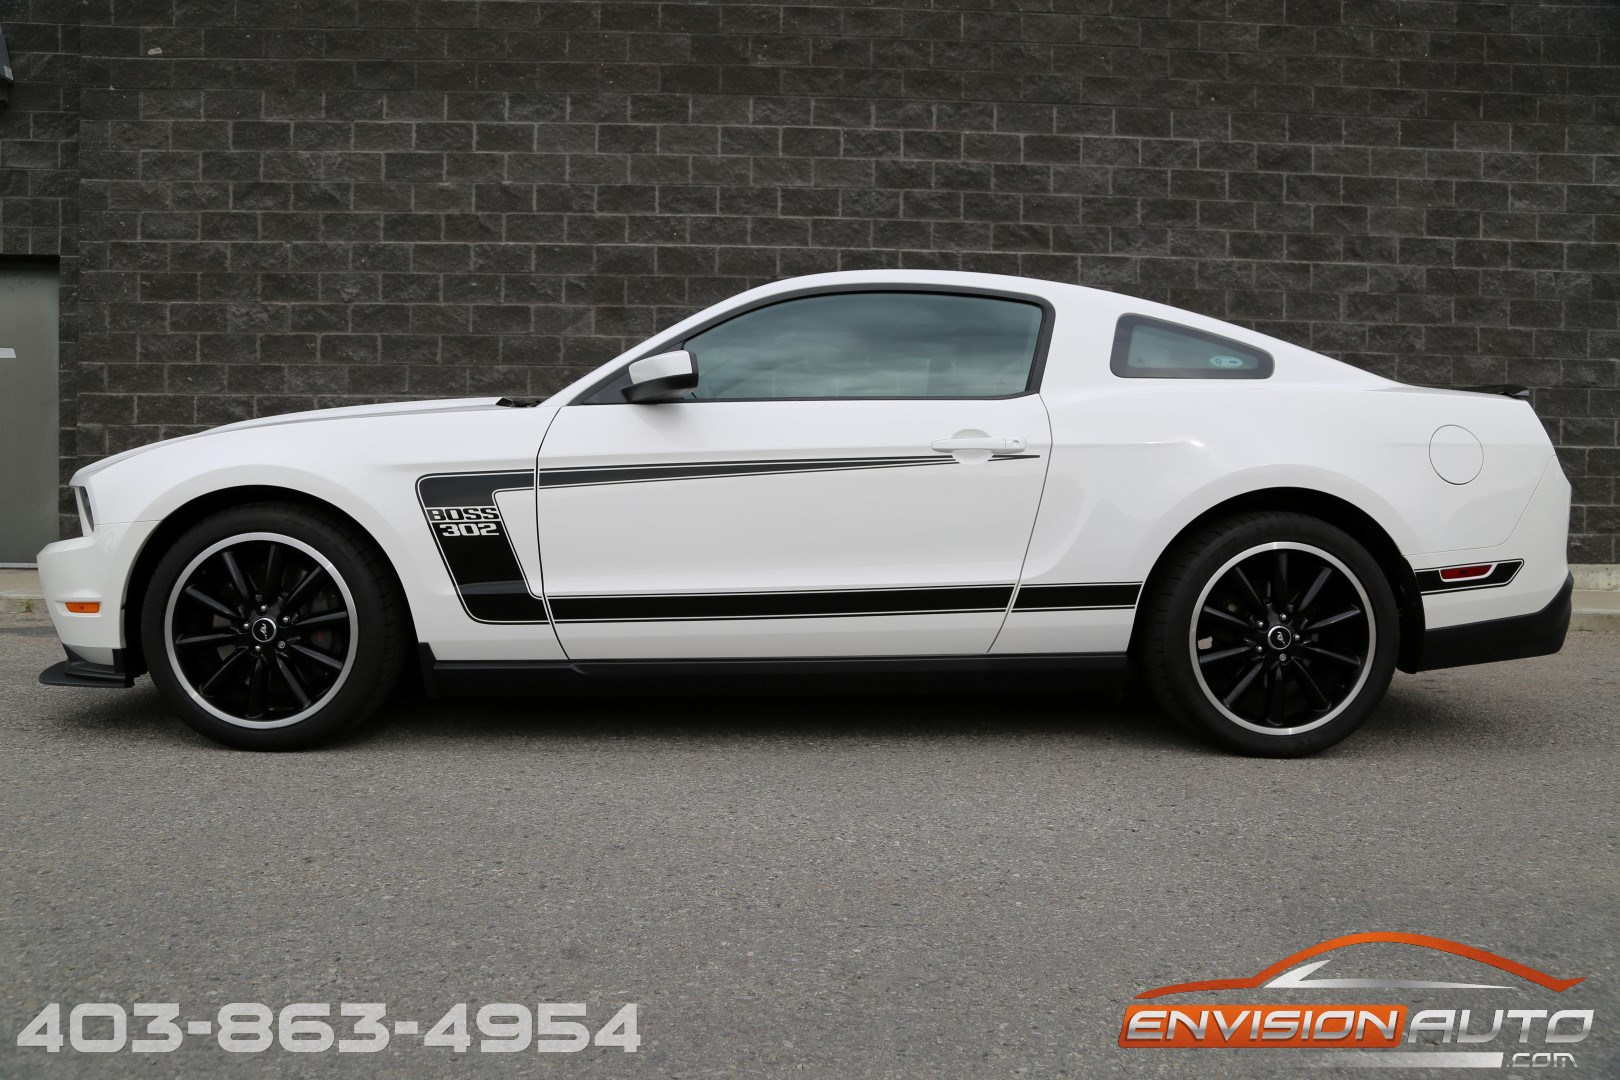 2012 Ford Mustang Boss 302 Keys